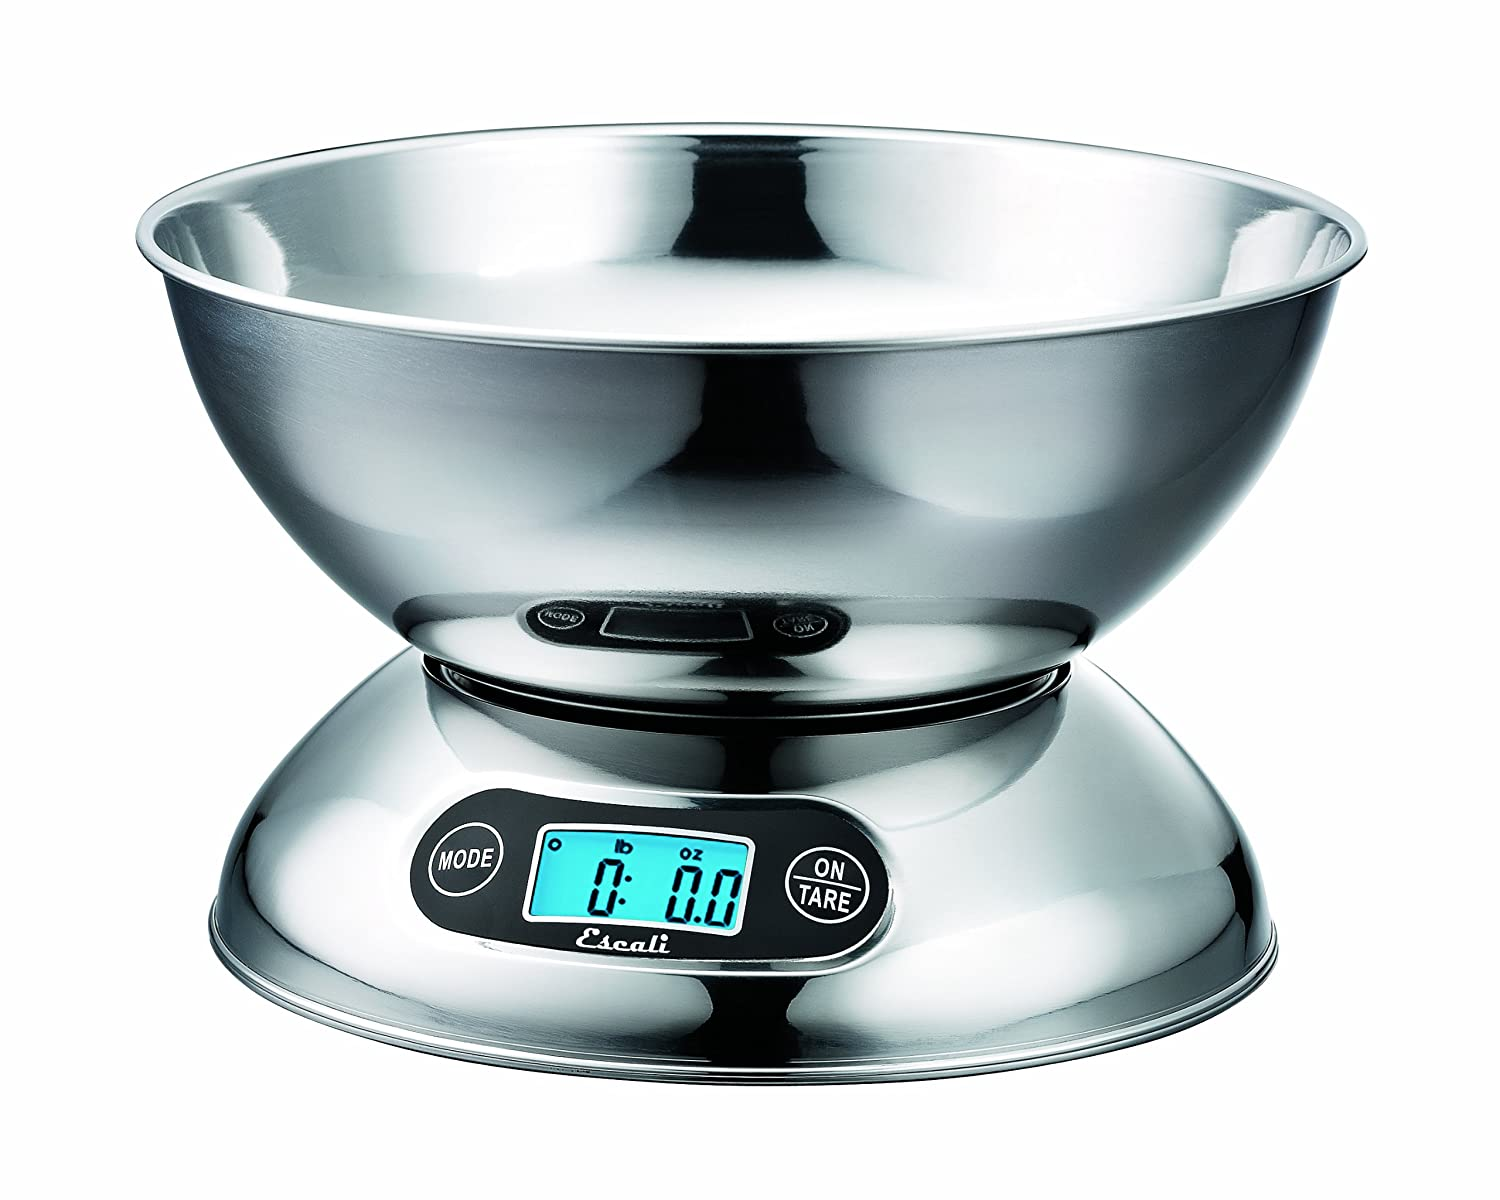 Amazon.com: Escali R115 Rondo Digital Bowl Scale 2 Quart Stainless Steel,  11 Lb/5 Kg: Digital Kitchen Scales: Kitchen U0026 Dining